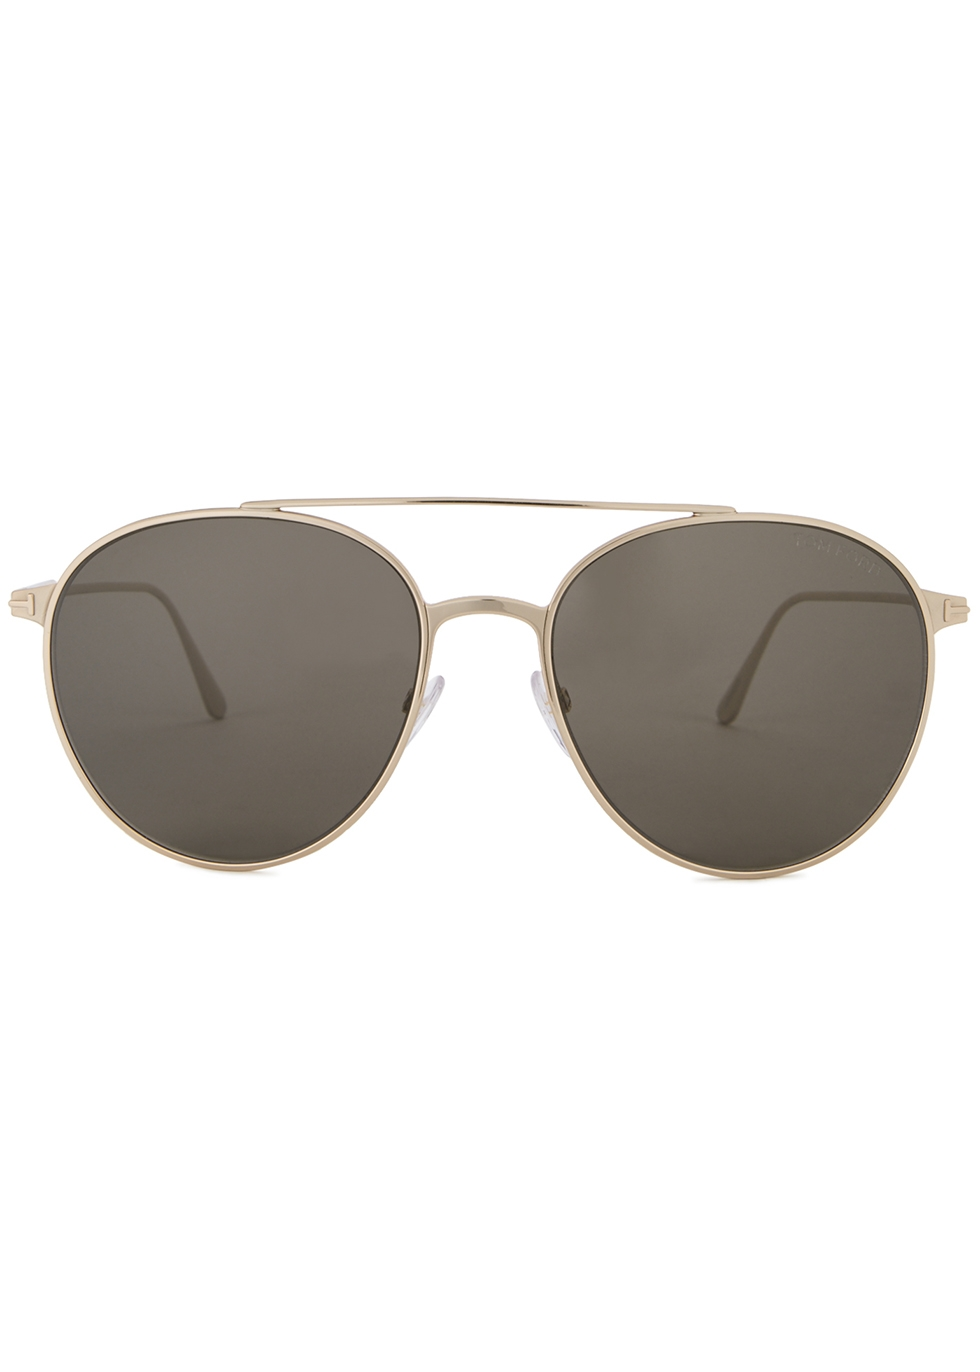 Rose gold-tone aviator-style sunglasses - Tom Ford Eyewear